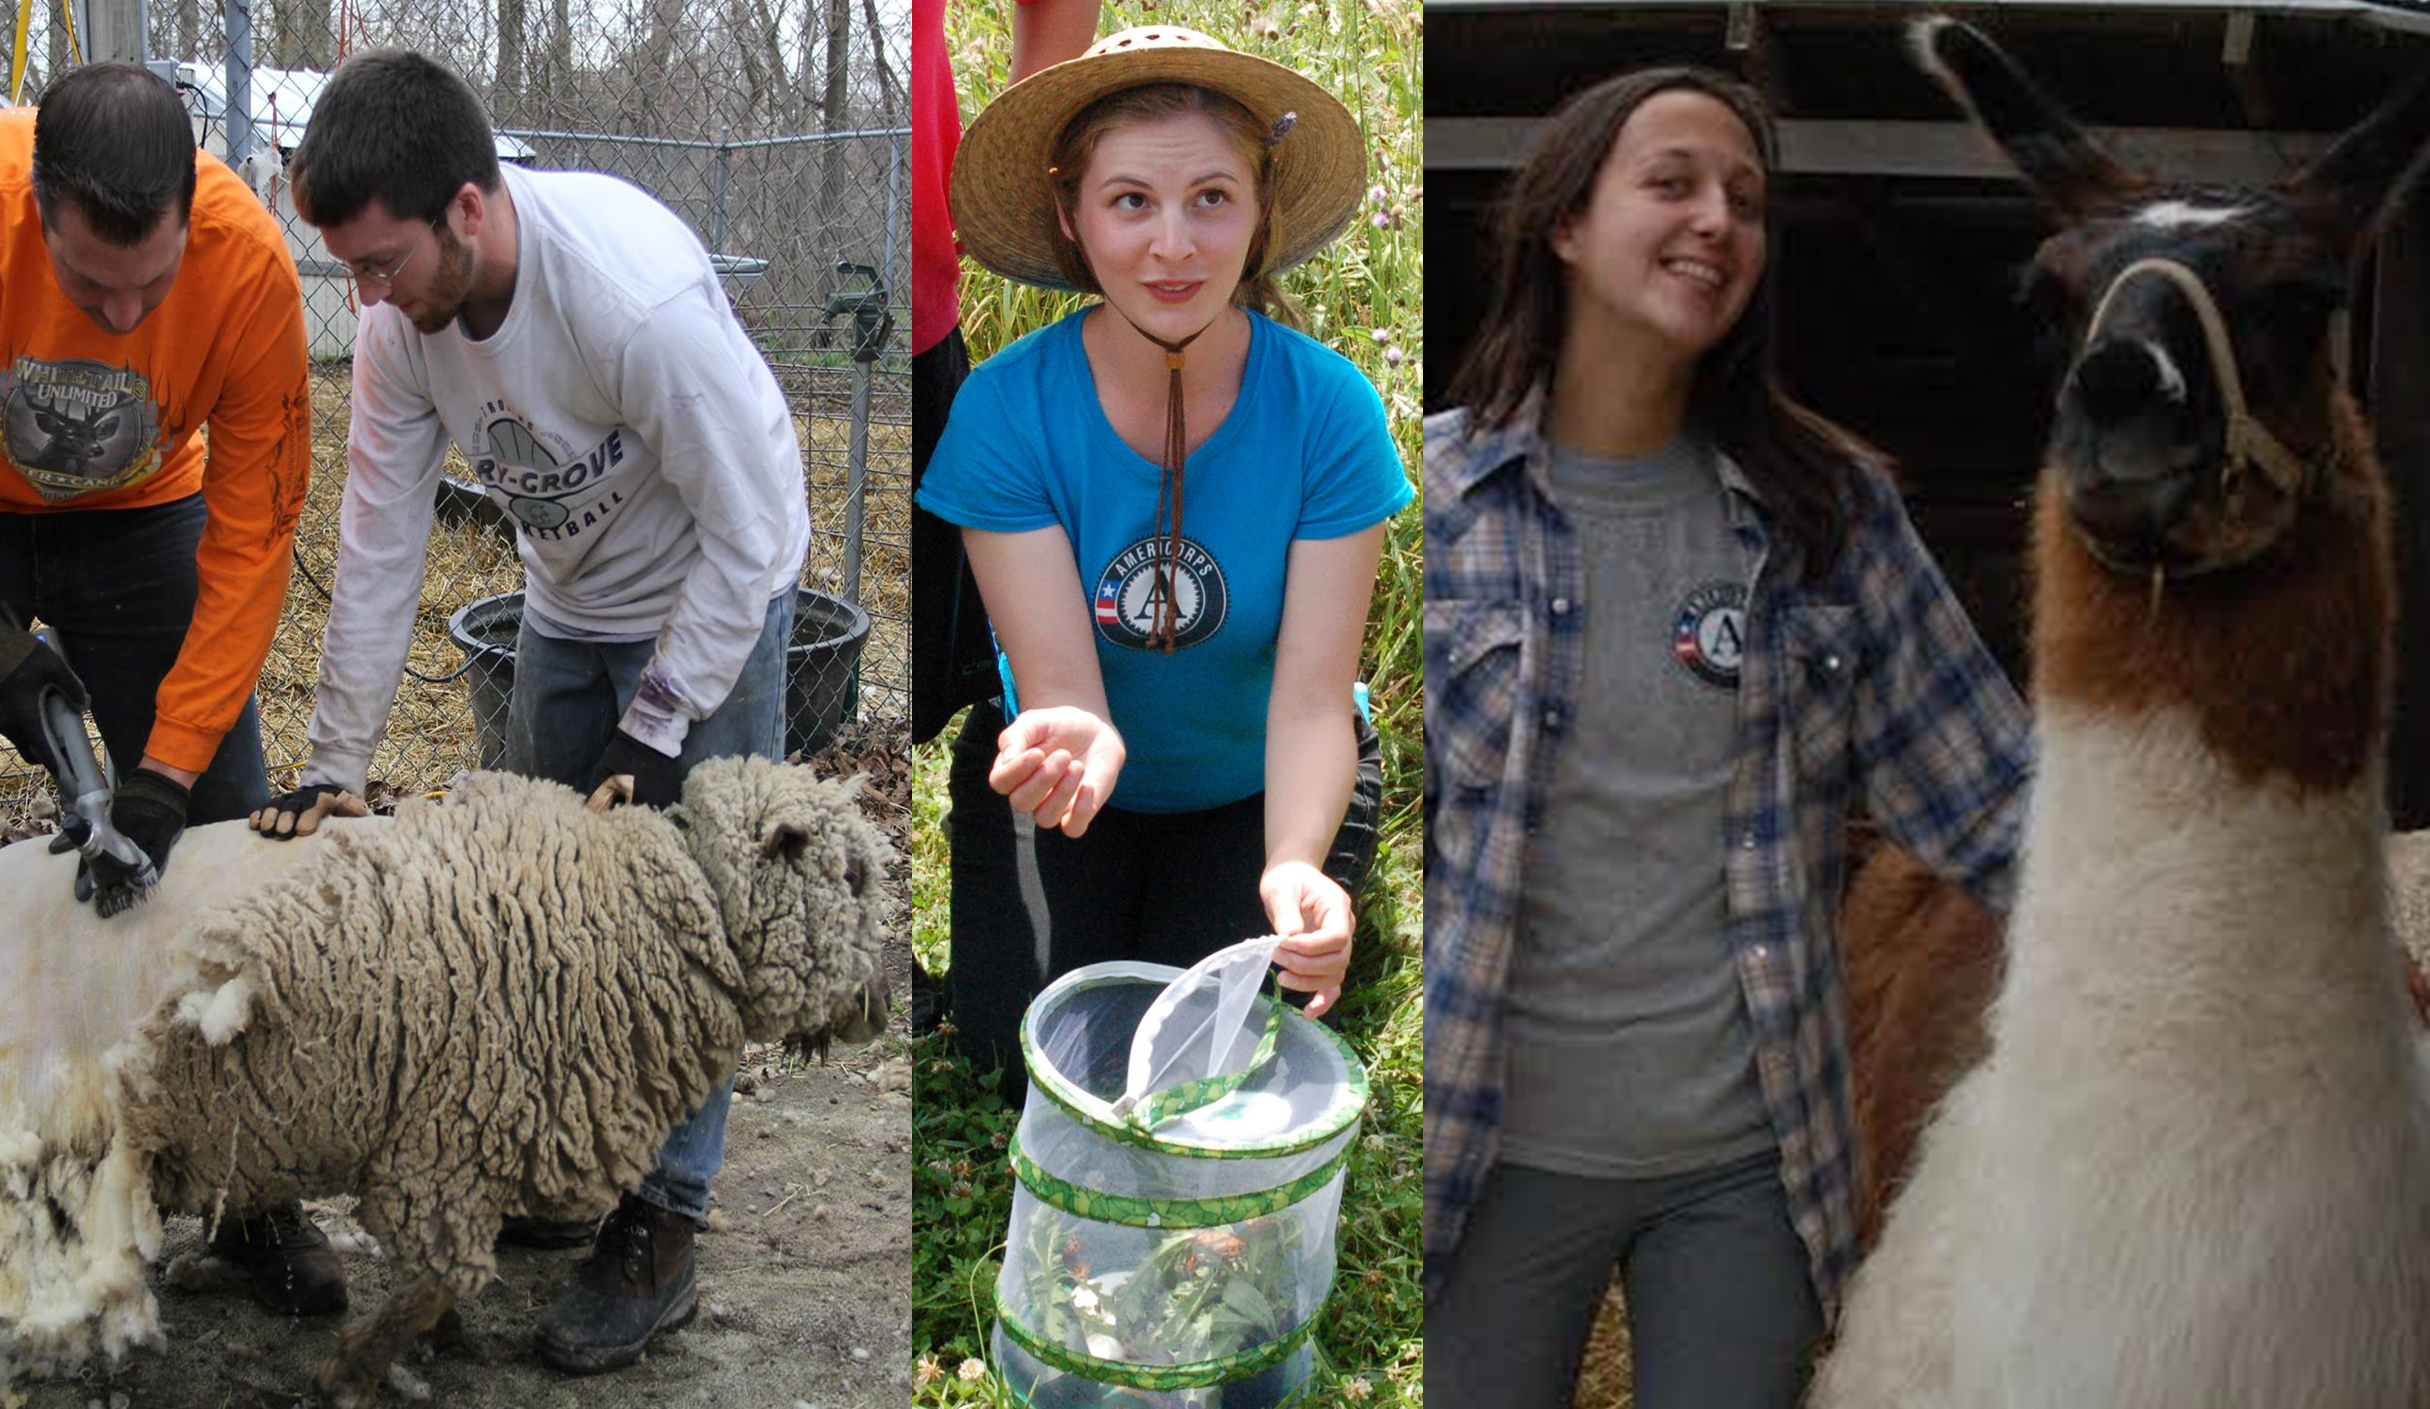 Images of previous AmeriCorps members that Shepherd's Corner has had over the years completing tasks. Shearing sheep, teaching about butterflies, and caring for our animals.